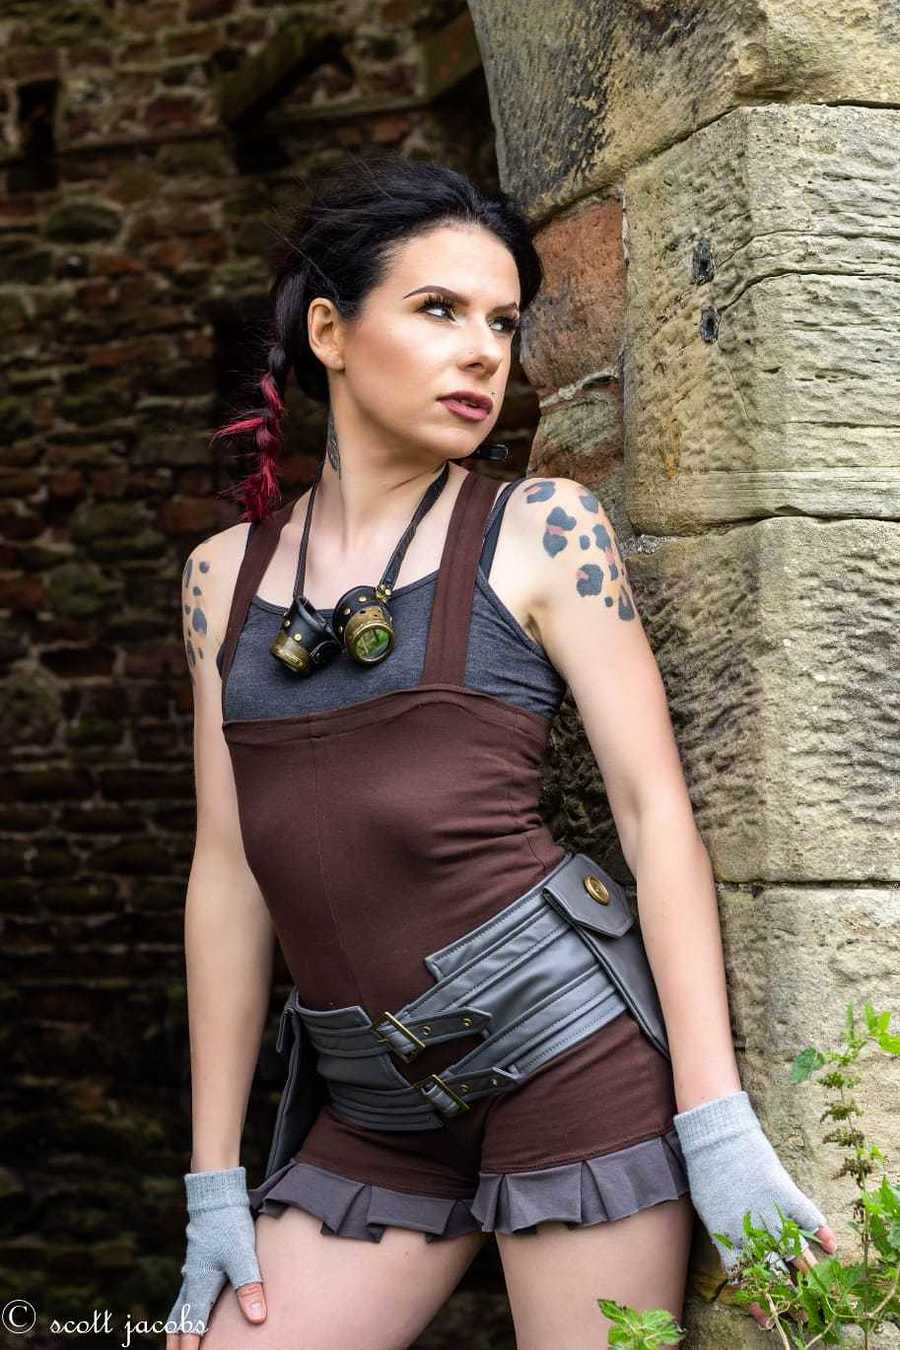 @ Scott Jacobs mua: Kelly McCall wearing Kato's Steampunk Couture / Model Amaryllis / Uploaded 29th October 2020 @ 09:22 PM